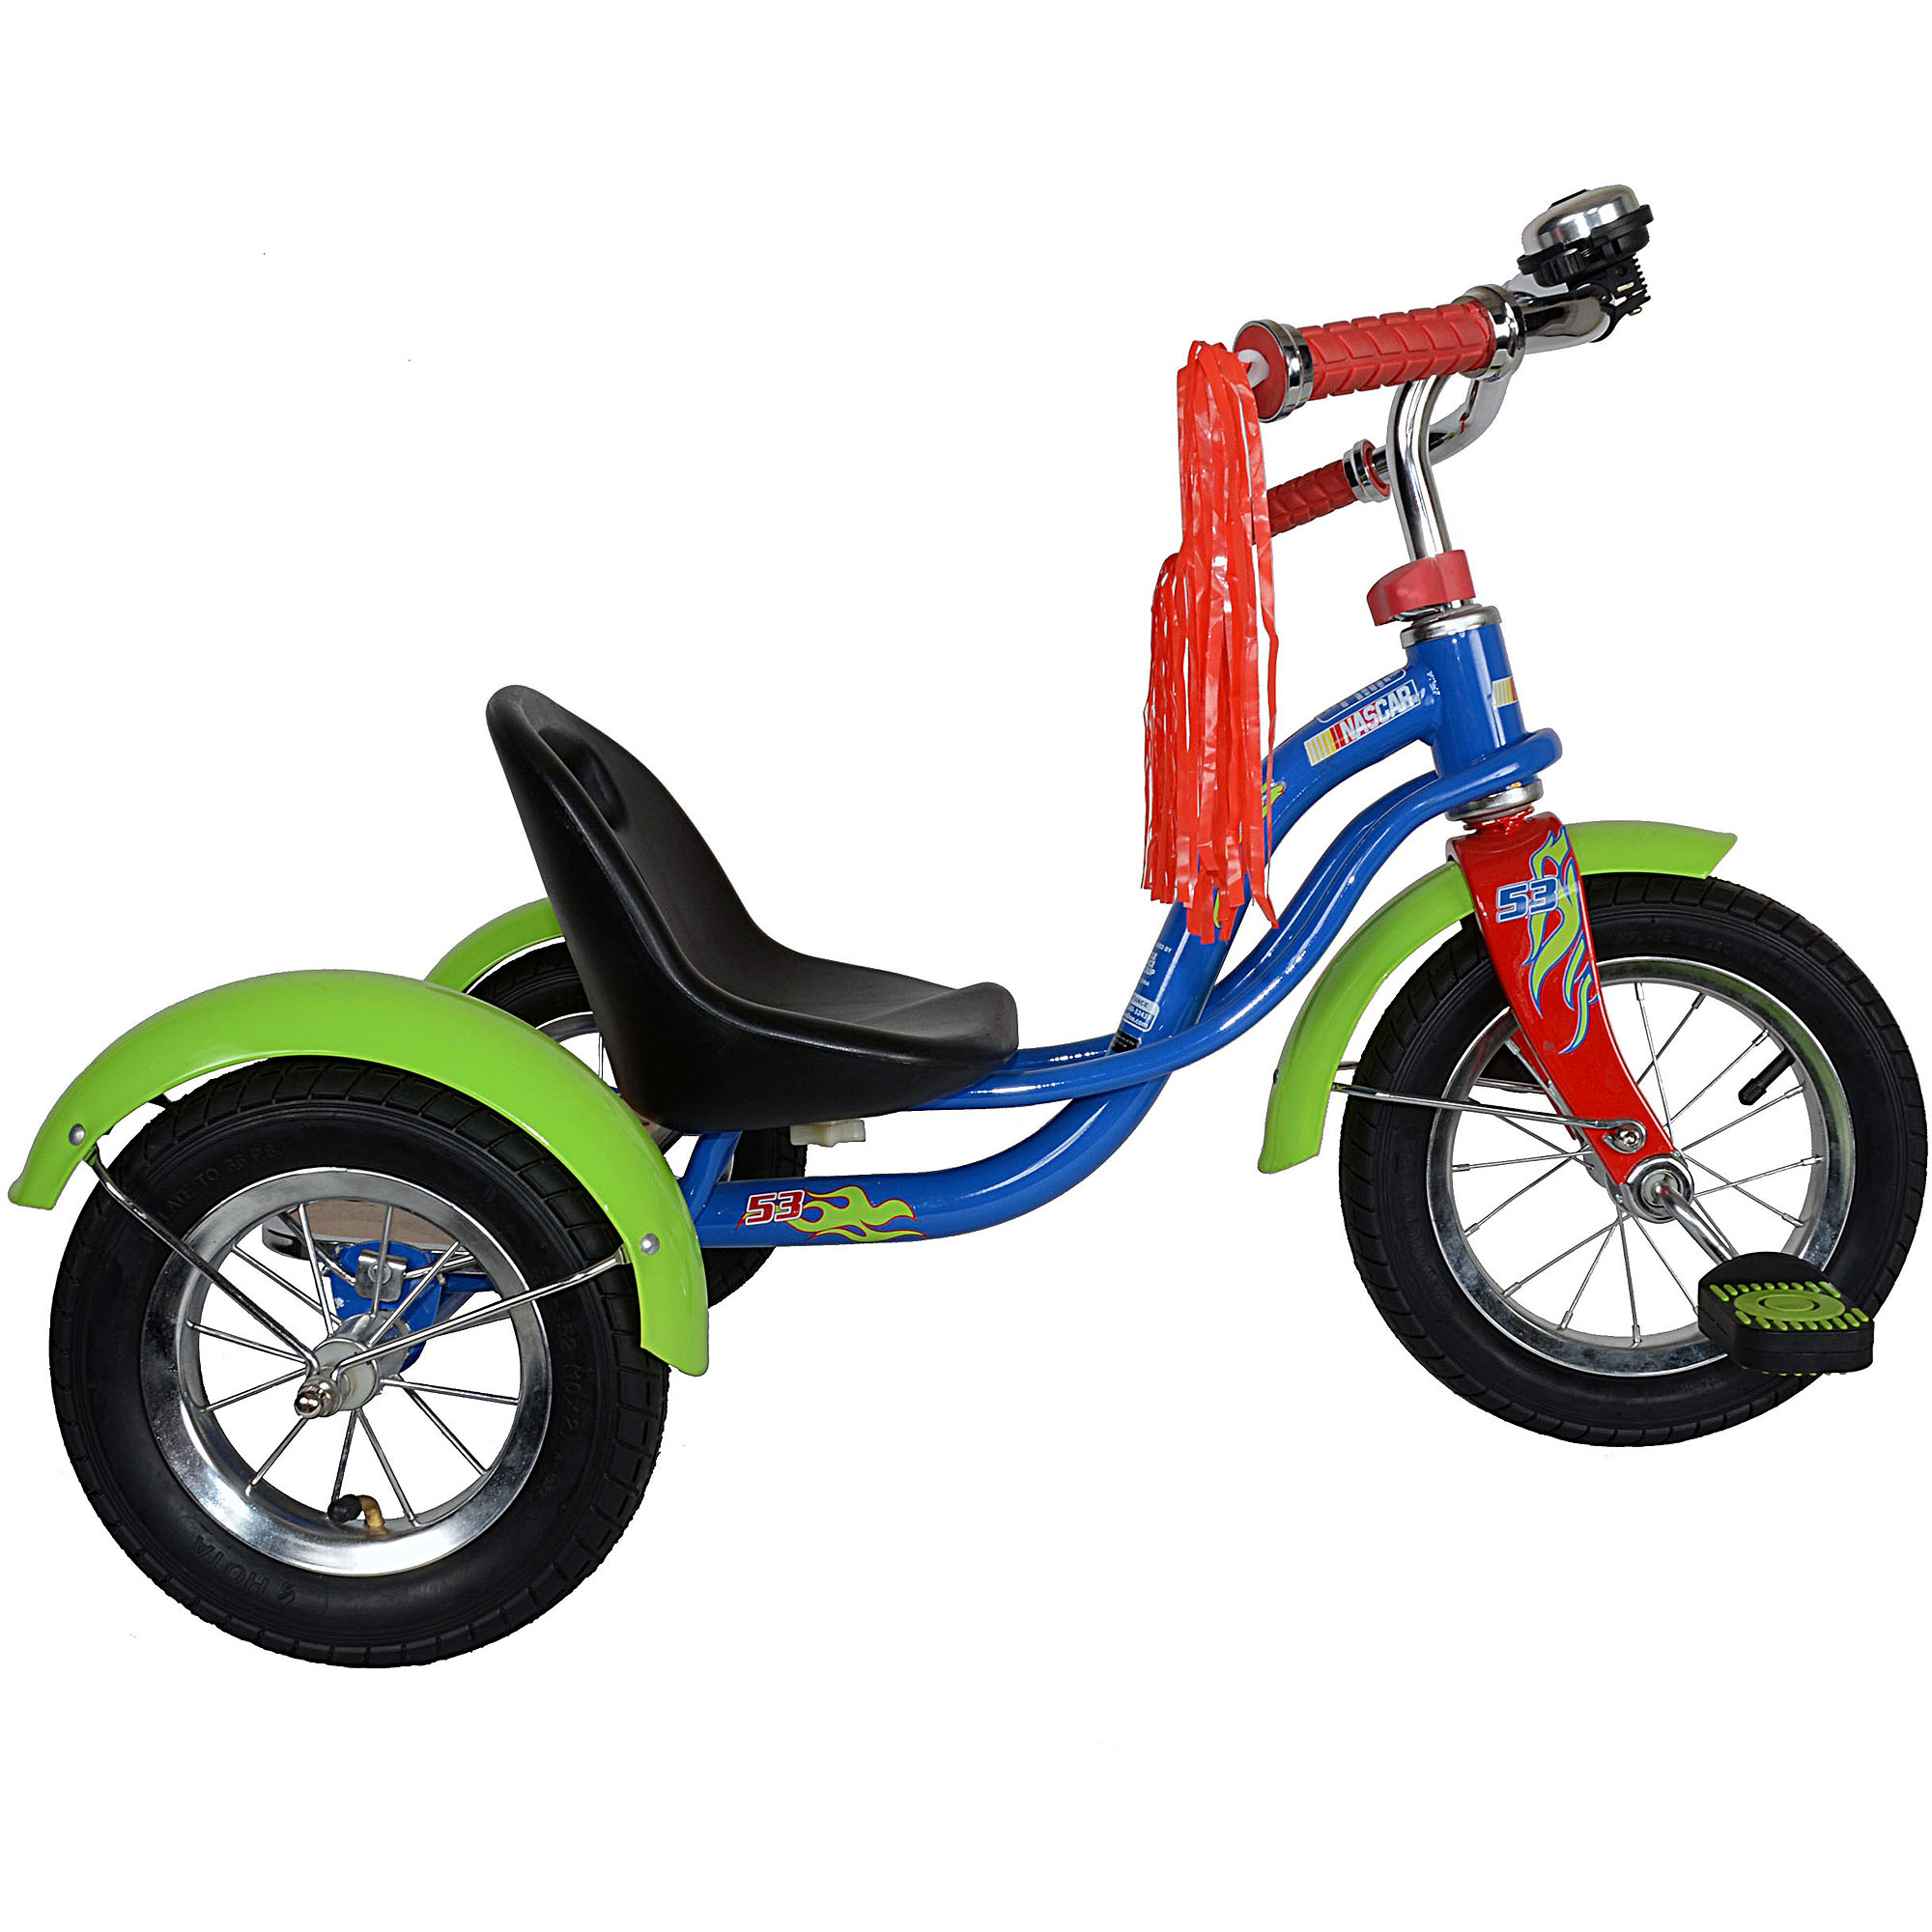 NASCAR Burnin' Rubber Tricycle